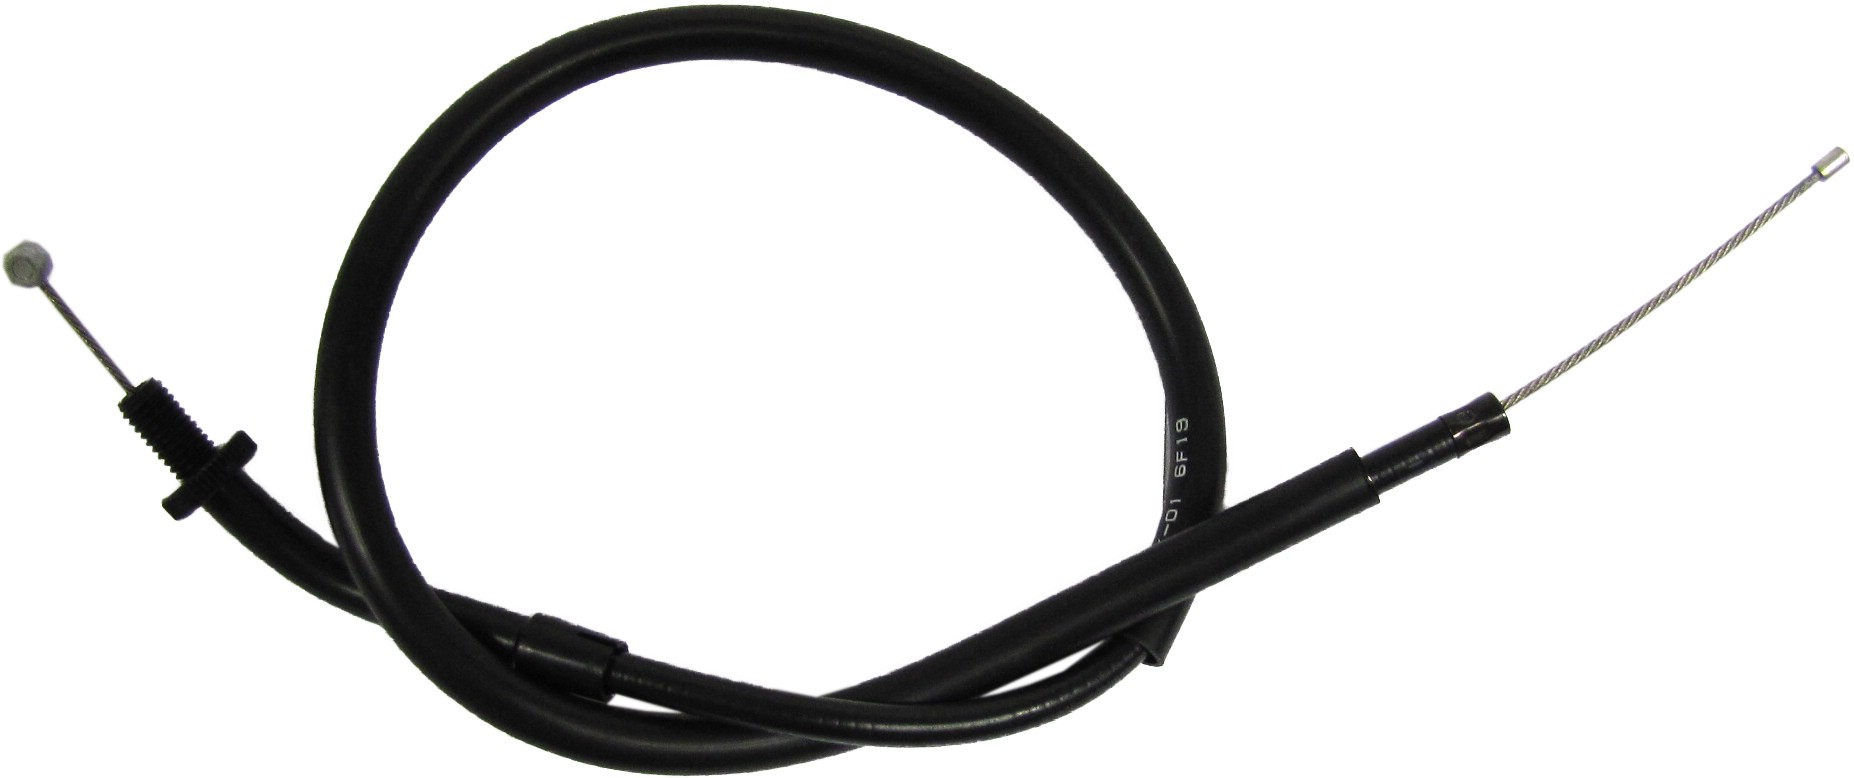 1996 Throttle Cable Close Yamaha VMX-12 1200 Vmax 3LRA